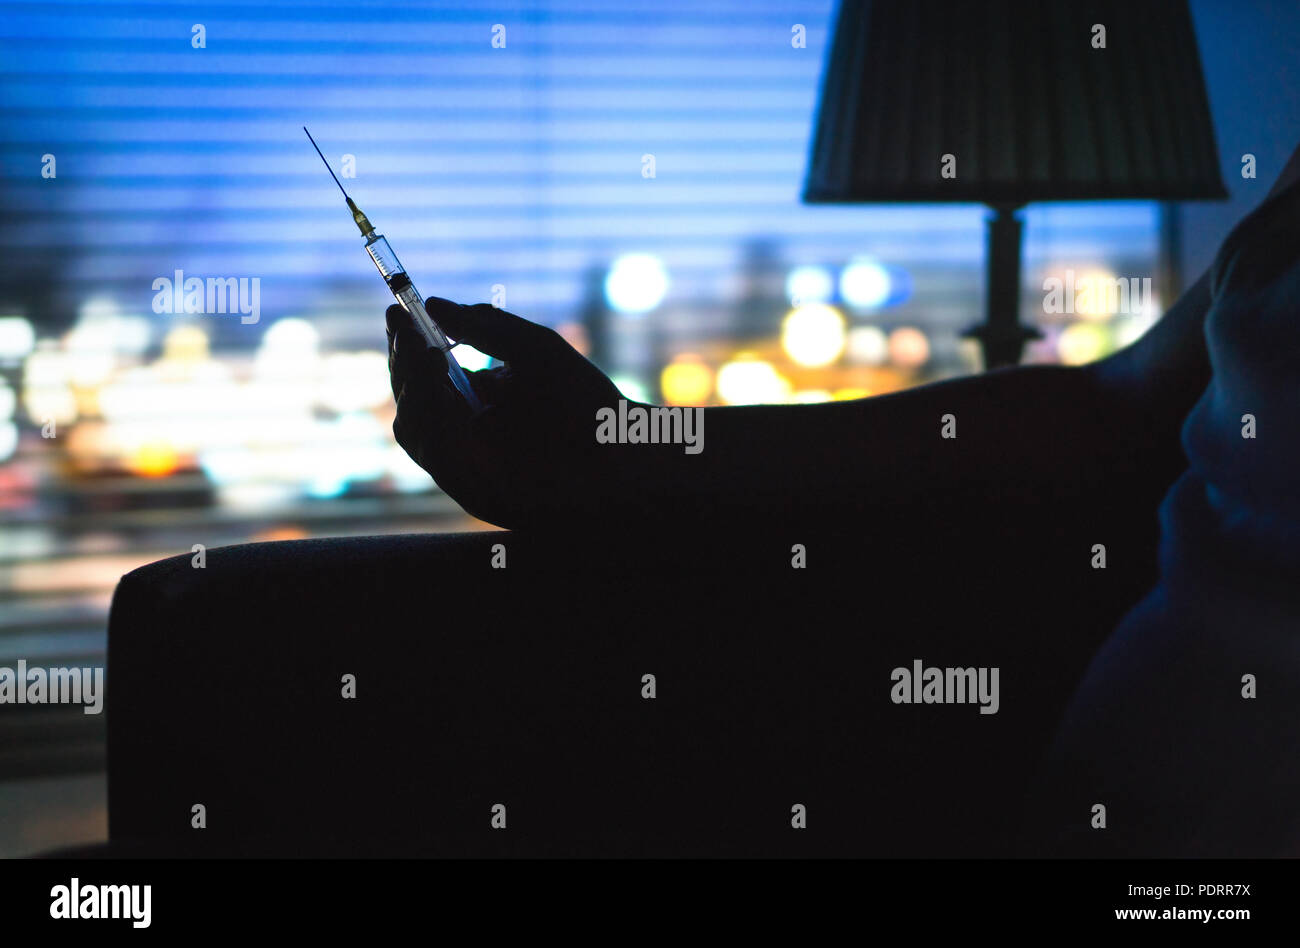 Drug addict with heroin syringe silhouette in dark. Hand holding needle late at night. City lights background from home apartment window. - Stock Image